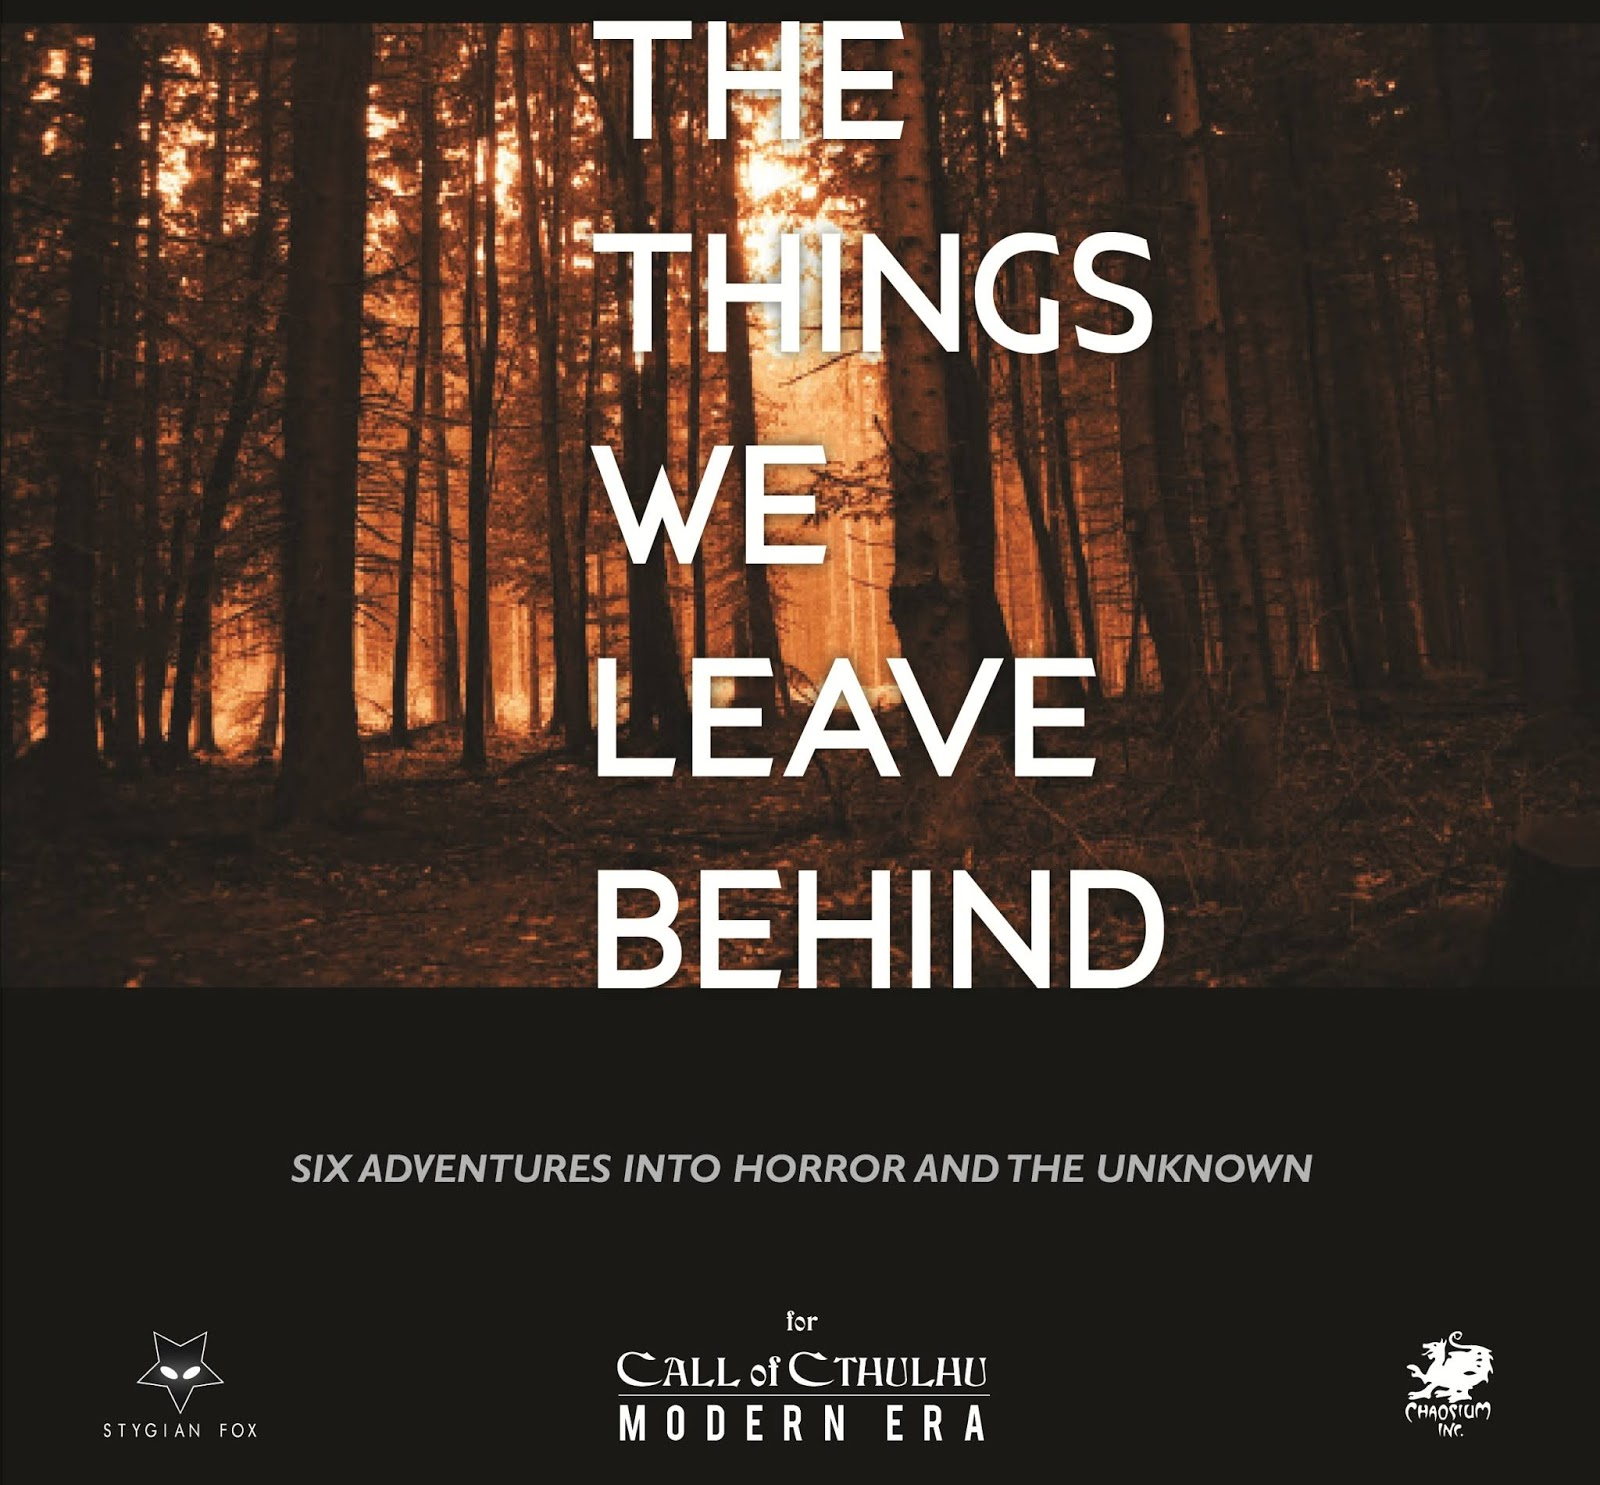 [Zew Cthulhu] The Things We Leave Behind - recenzja